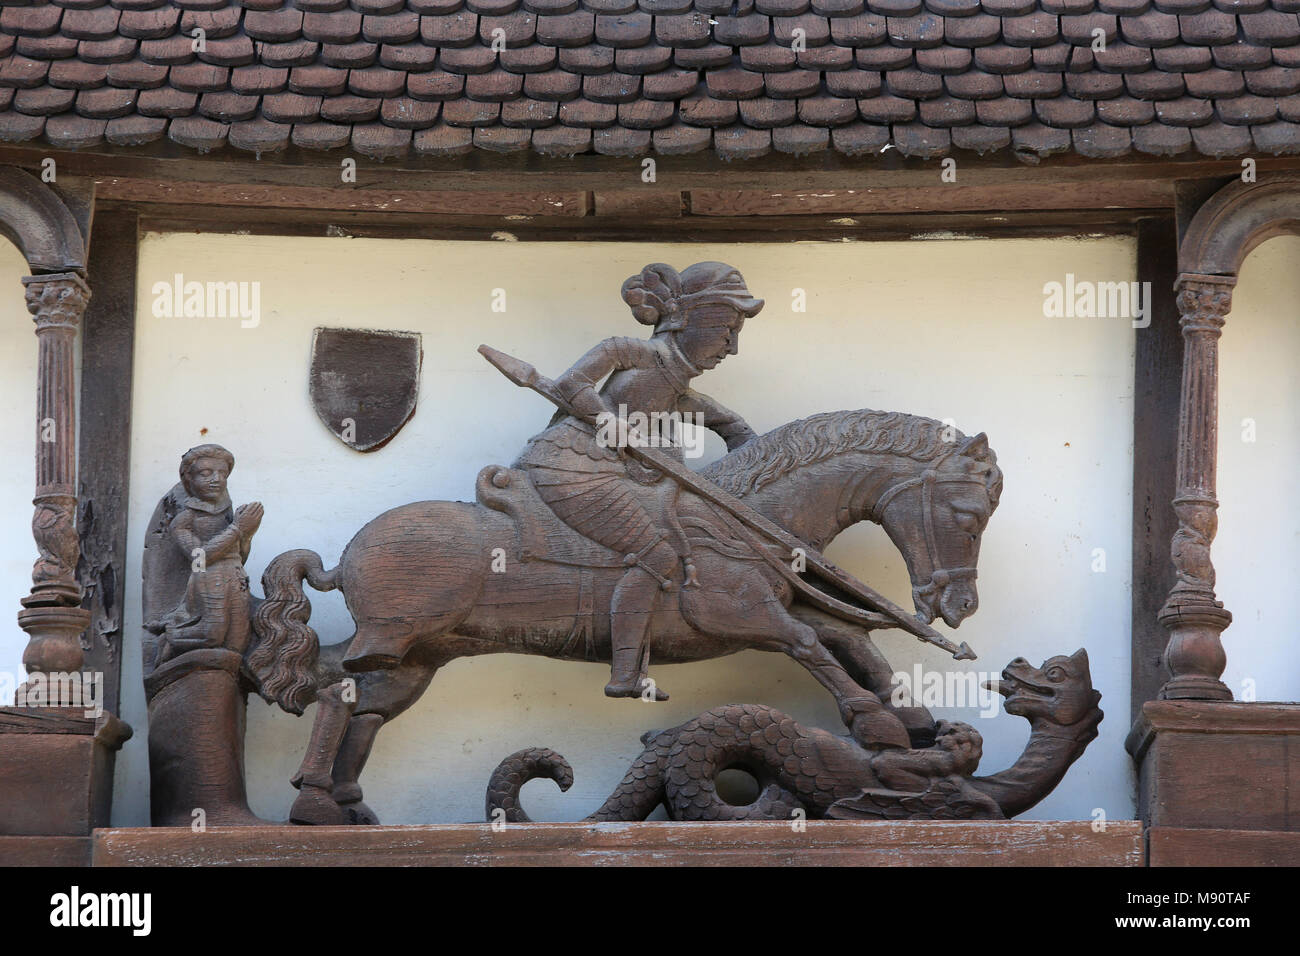 Arts and craft village in Dives sur Mer, France. Architectural detail. St George slaying the dragon. - Stock Image